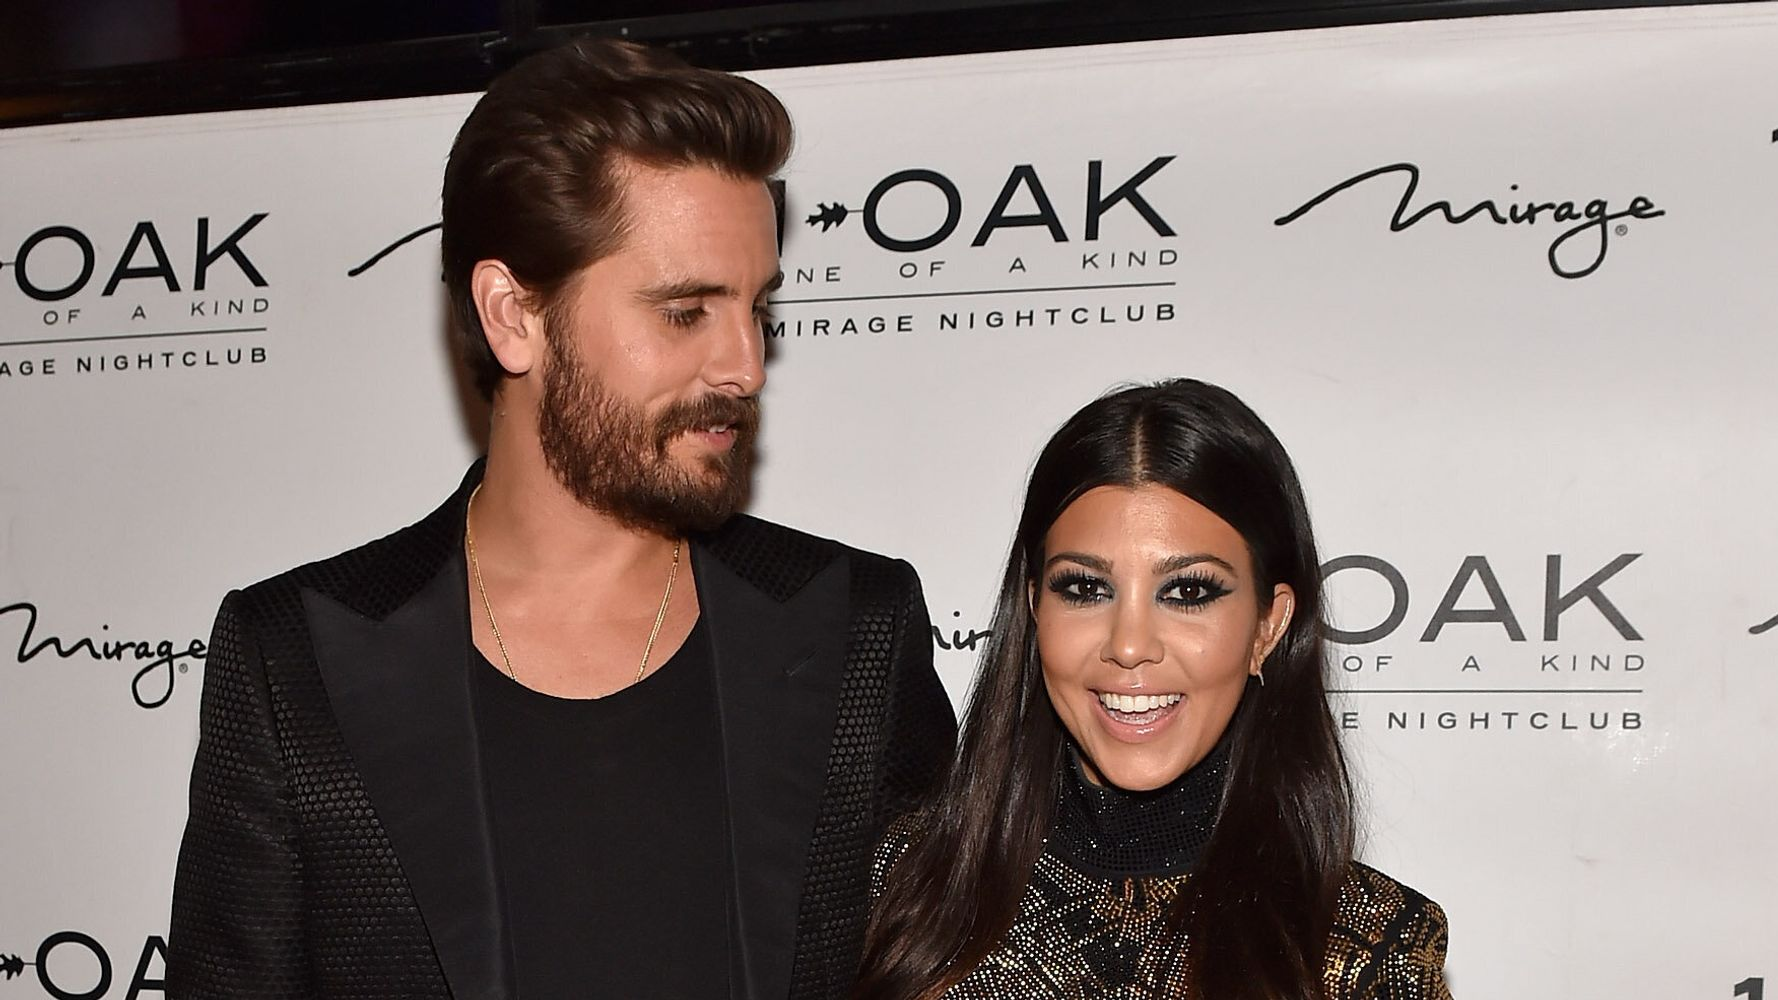 Scott Disick Offers Spicy Remark To Kourtney Kardashian's Use Of 'WAP' Lyrics